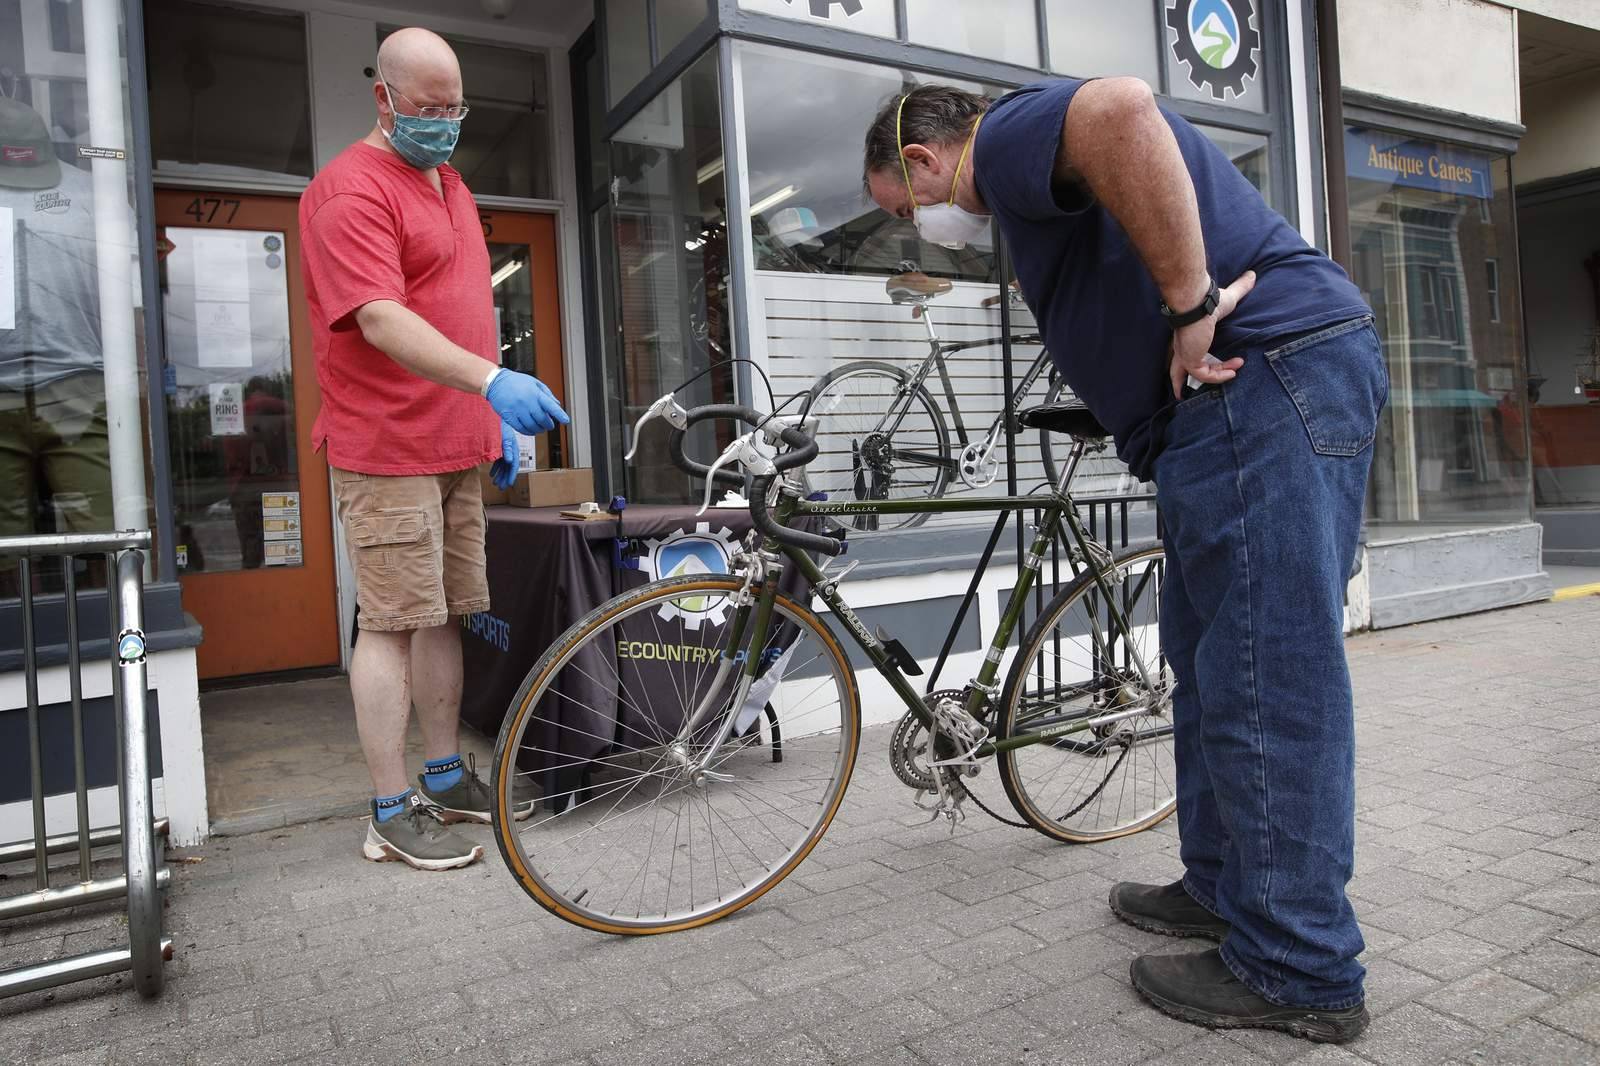 Pandemic leads to a bicycle boom, and shortage, around world